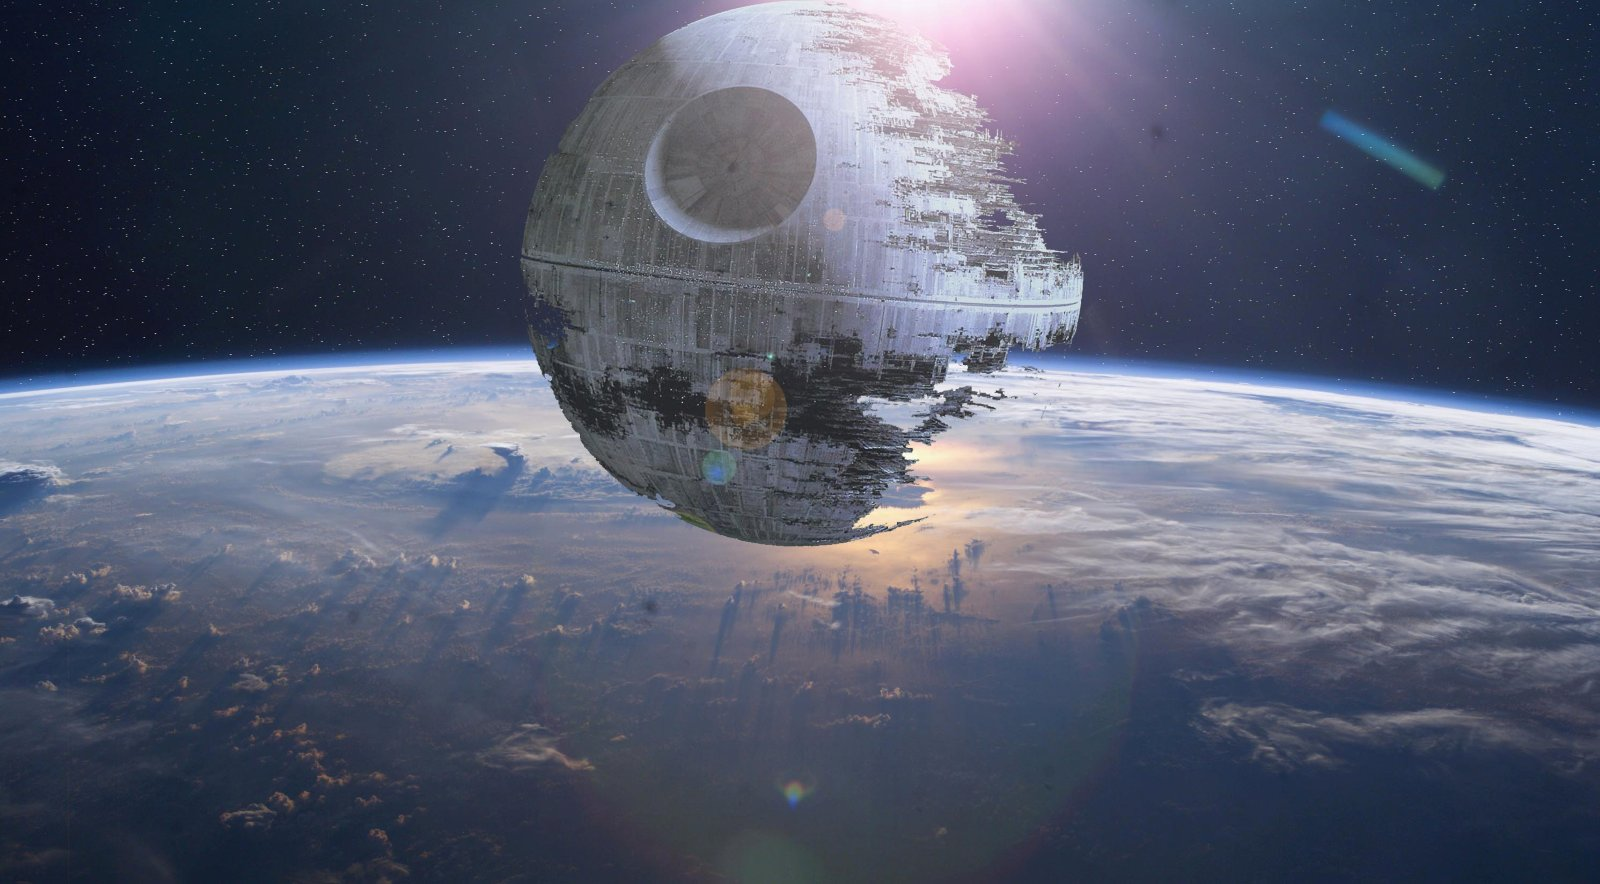 Every Estimate of the Cost of Building the Death Star is Wrong